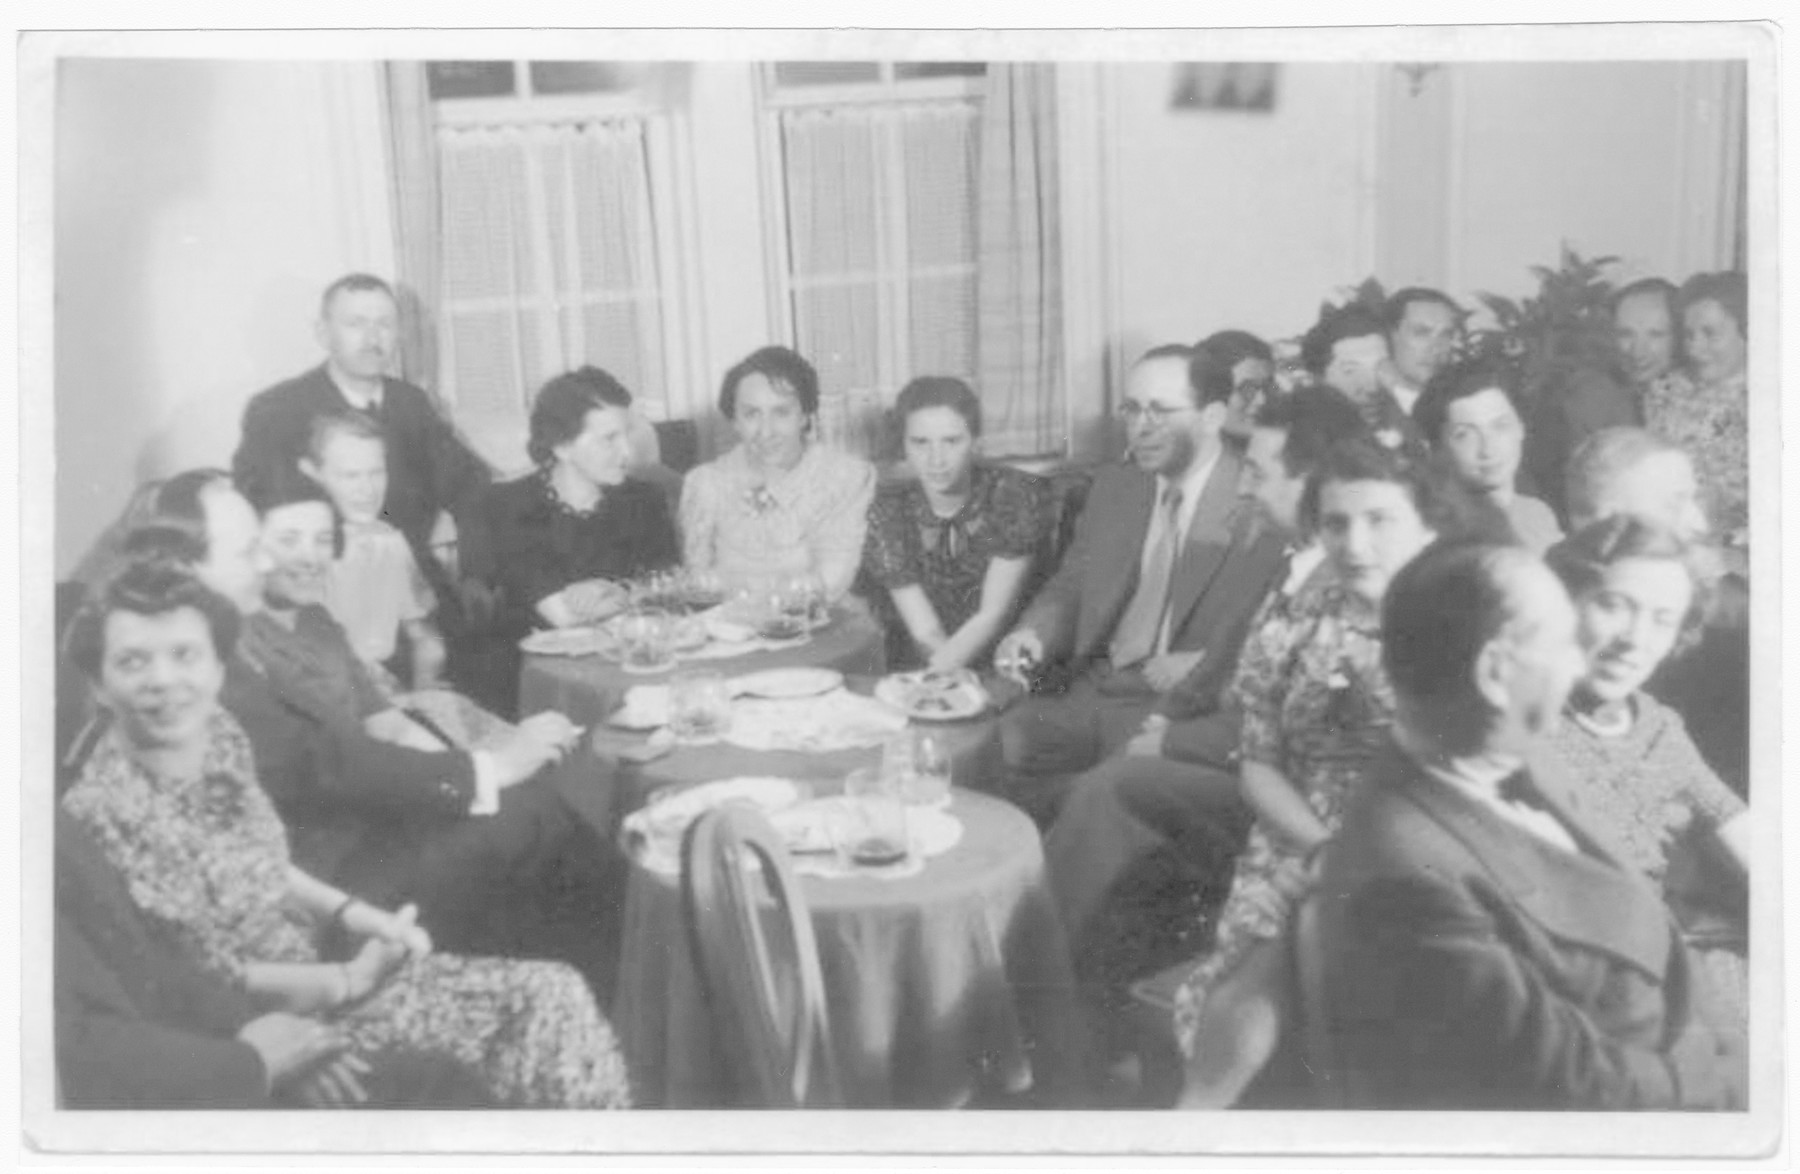 Passengers on board the St. Louis dine together.  Among those pictured are (back row) Mr. and Mrs. Karliner, Vera Spitz, Erna Ring, and Ursula Spitz.